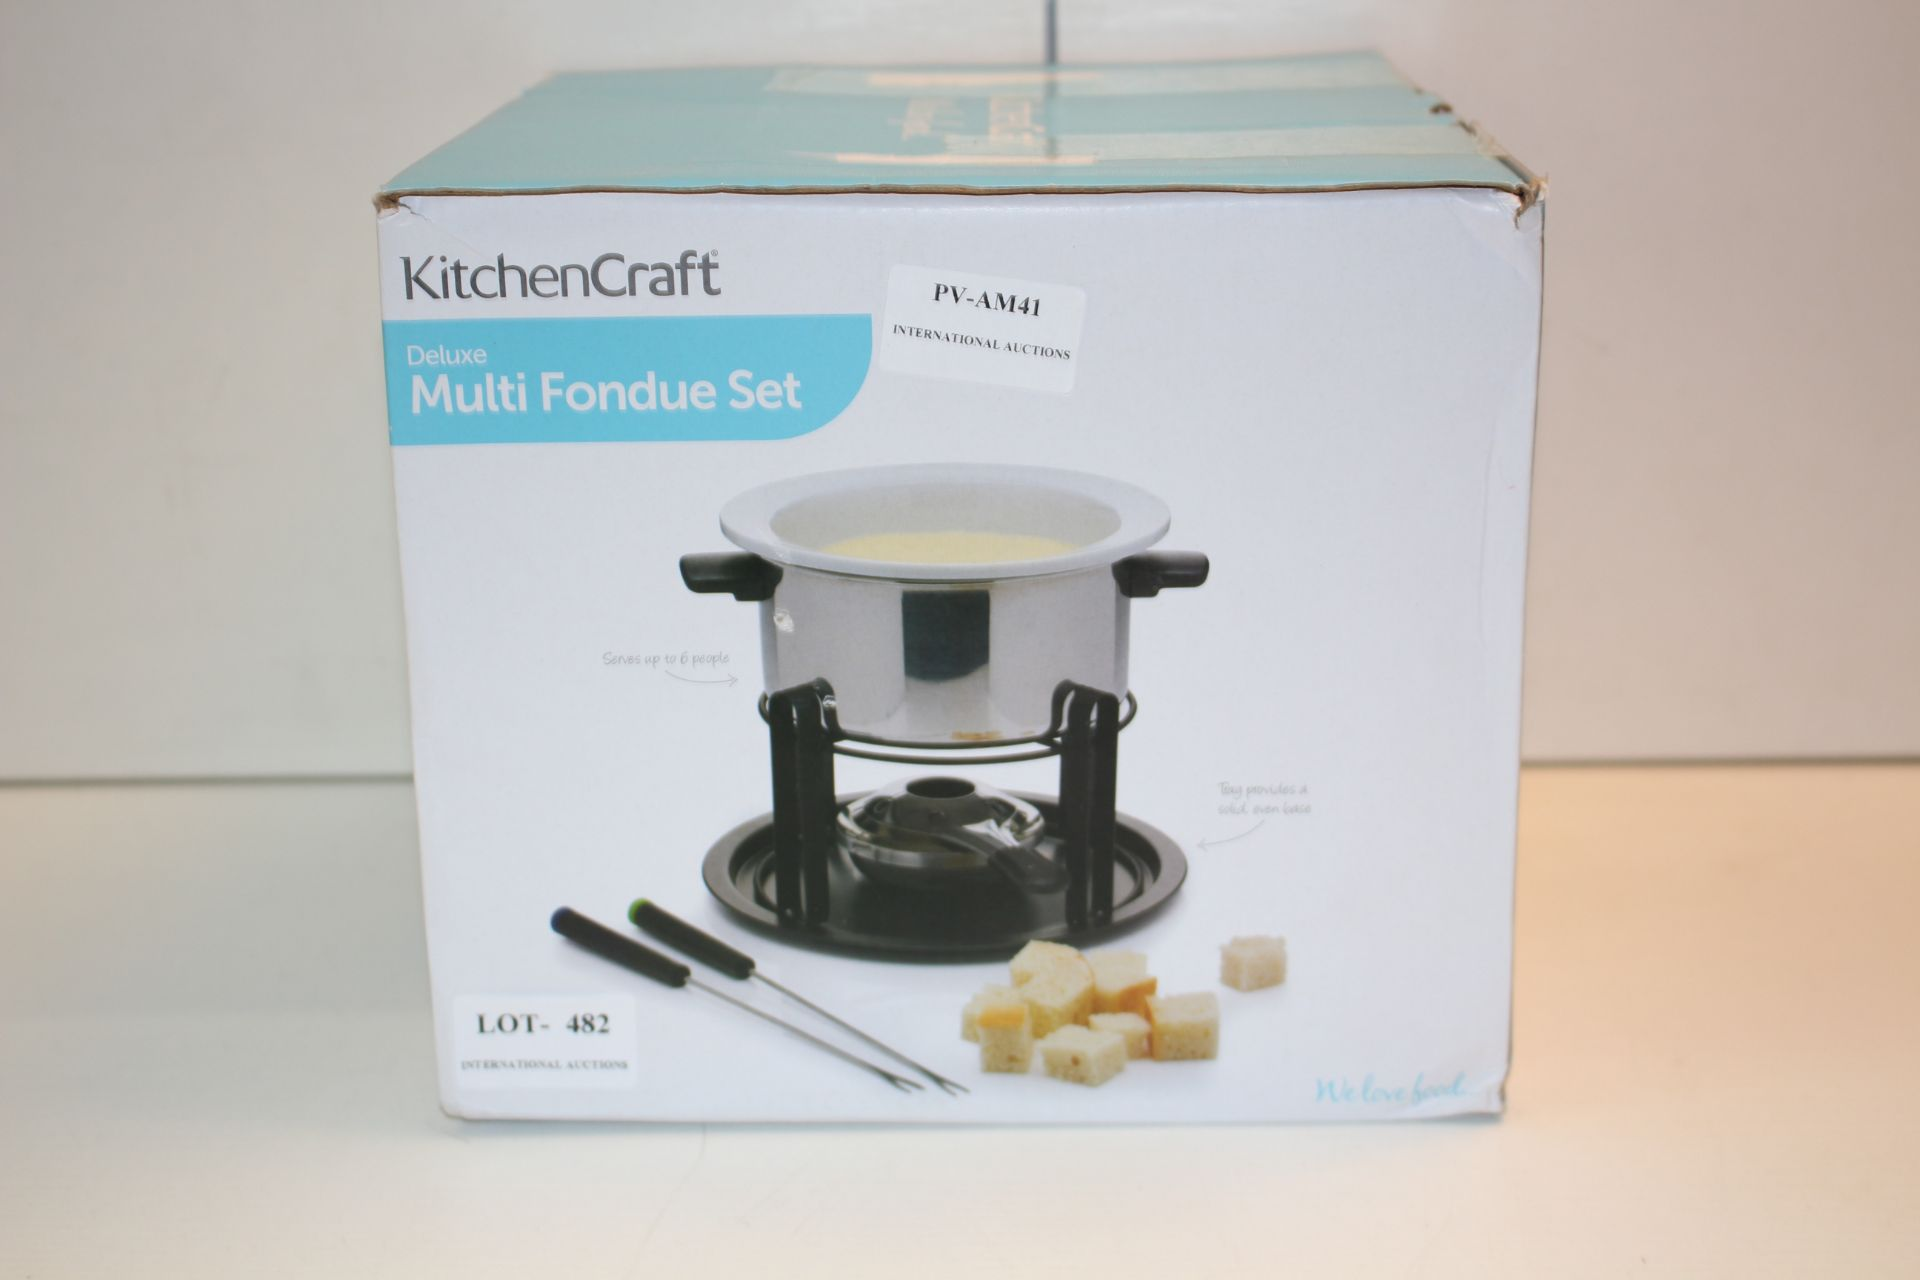 BOXED KITCHEN KRAFT DELUXE MULTI FONDUE SETCondition ReportAppraisal Available on Request- All Items